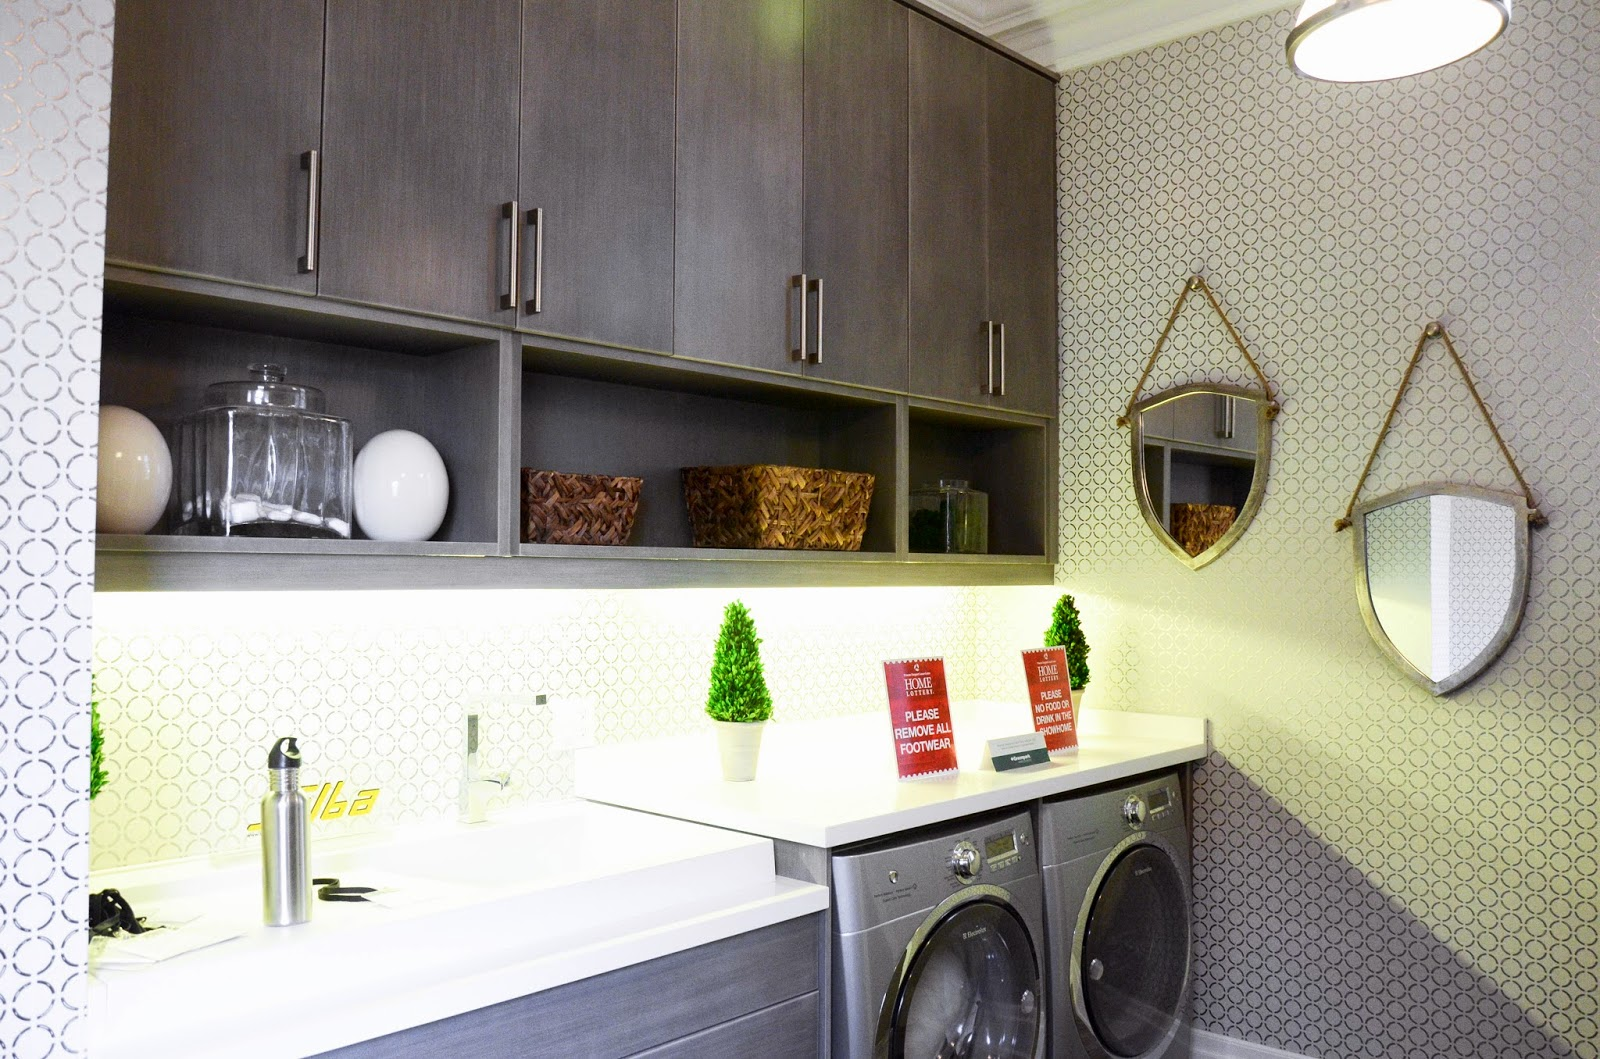 PMLOTTO KLEINBURG SHOWROOM: Luxurious Laundry room ideas